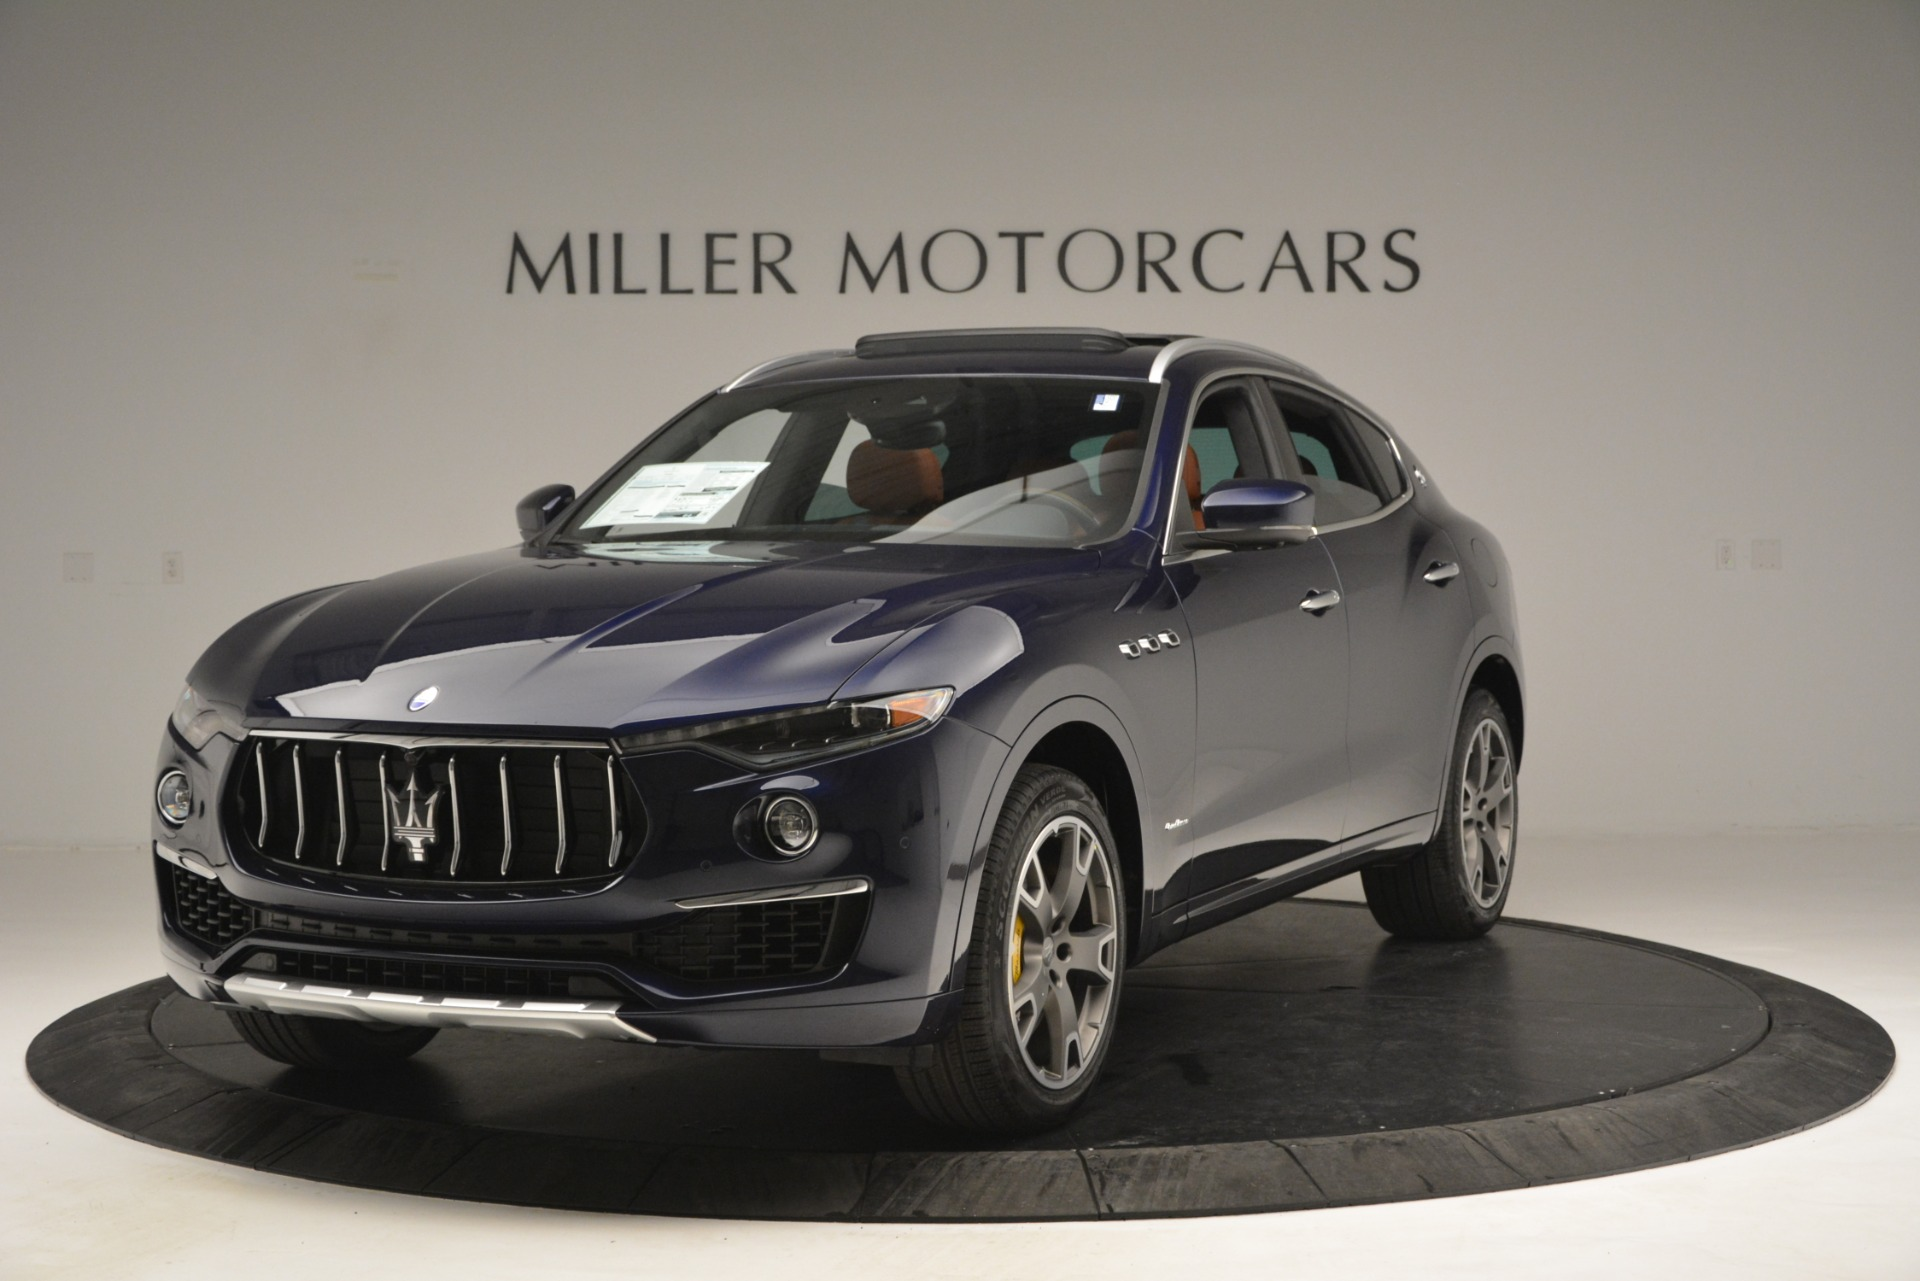 New 2019 Maserati Levante S Q4 GranLusso for sale Sold at Bentley Greenwich in Greenwich CT 06830 1